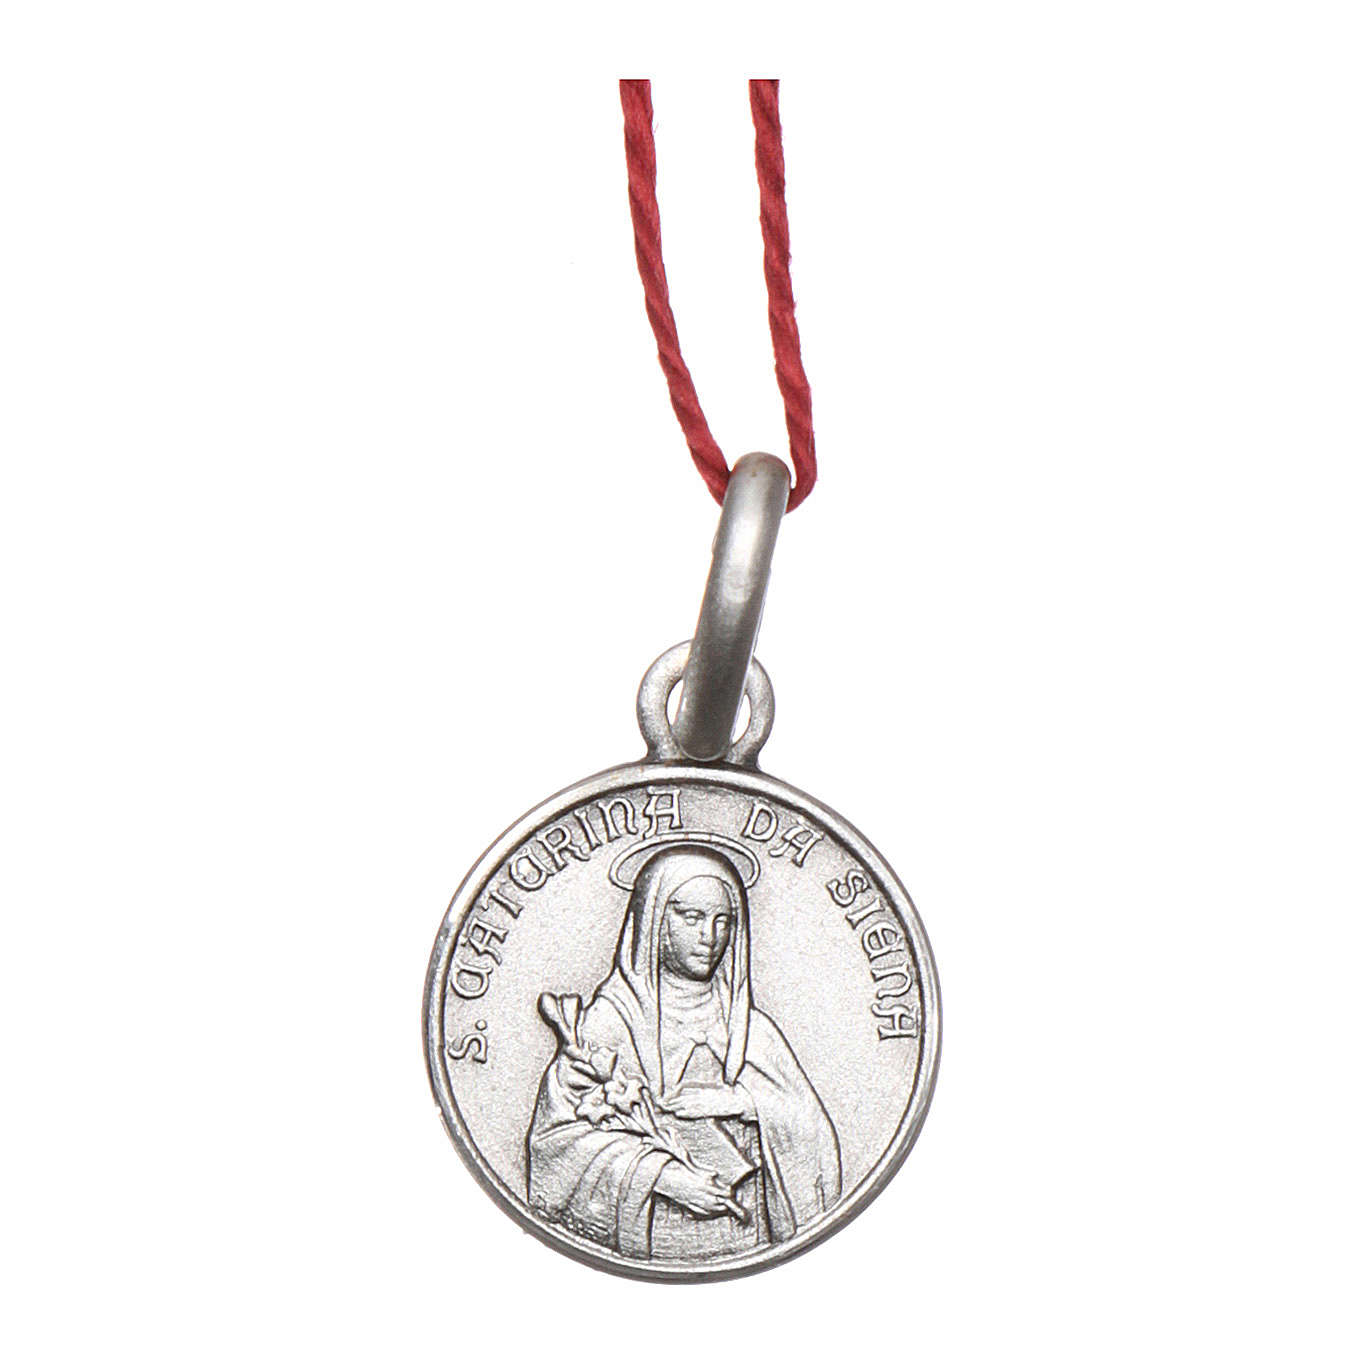 Rhodium plated medal with St. Catherine of Siena 10 mm 4